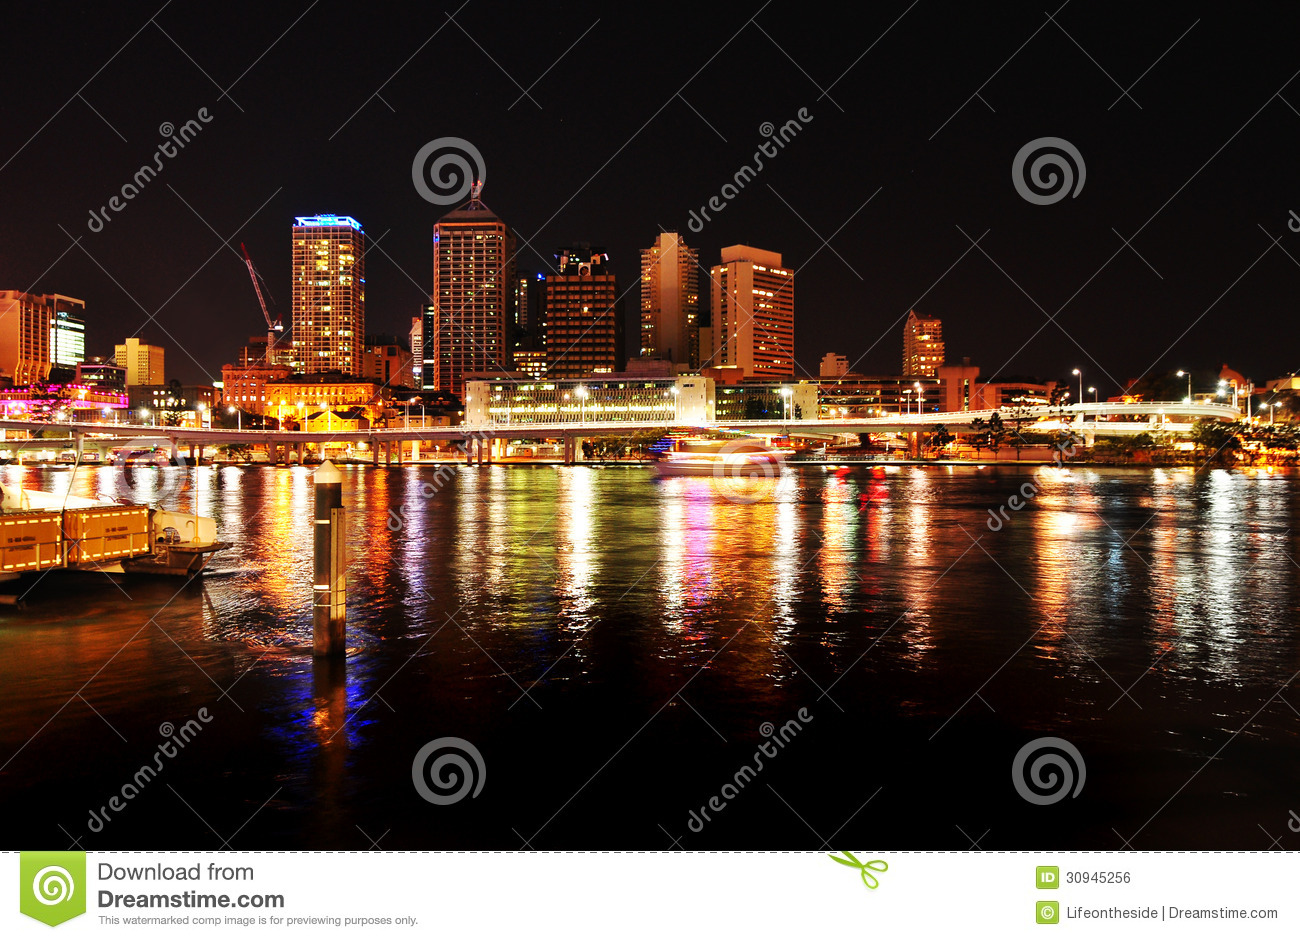 Brisbane Lighting Night Lights At Brisbane City Reflecting In River Stock Photo